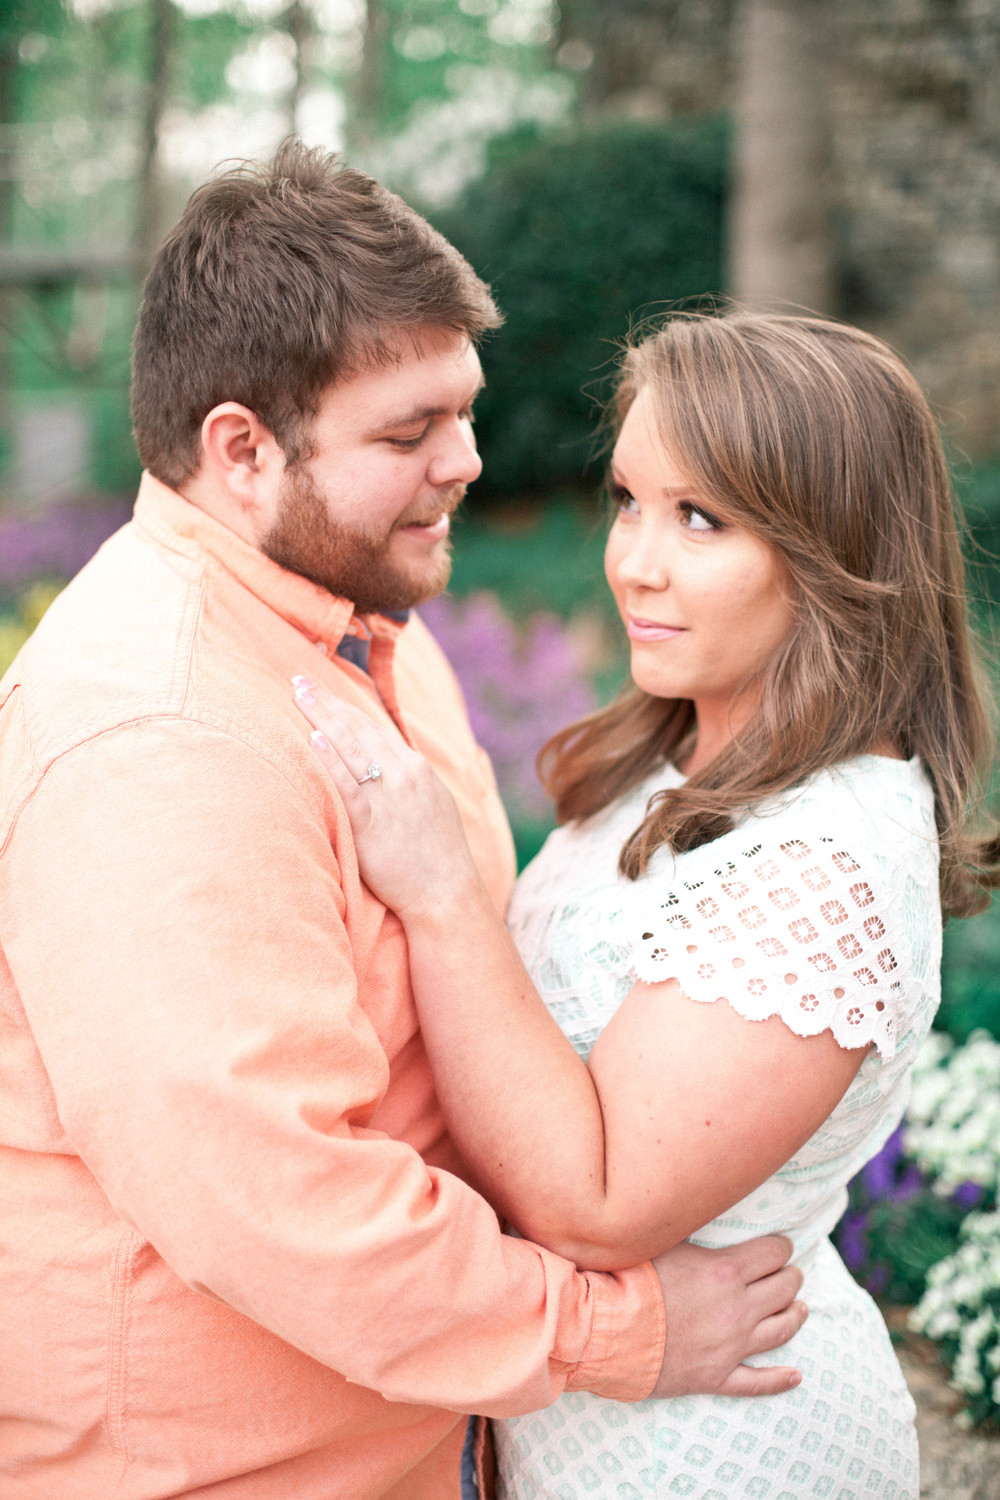 zach_gabbie_engagement_poured_out_photography-27.jpg